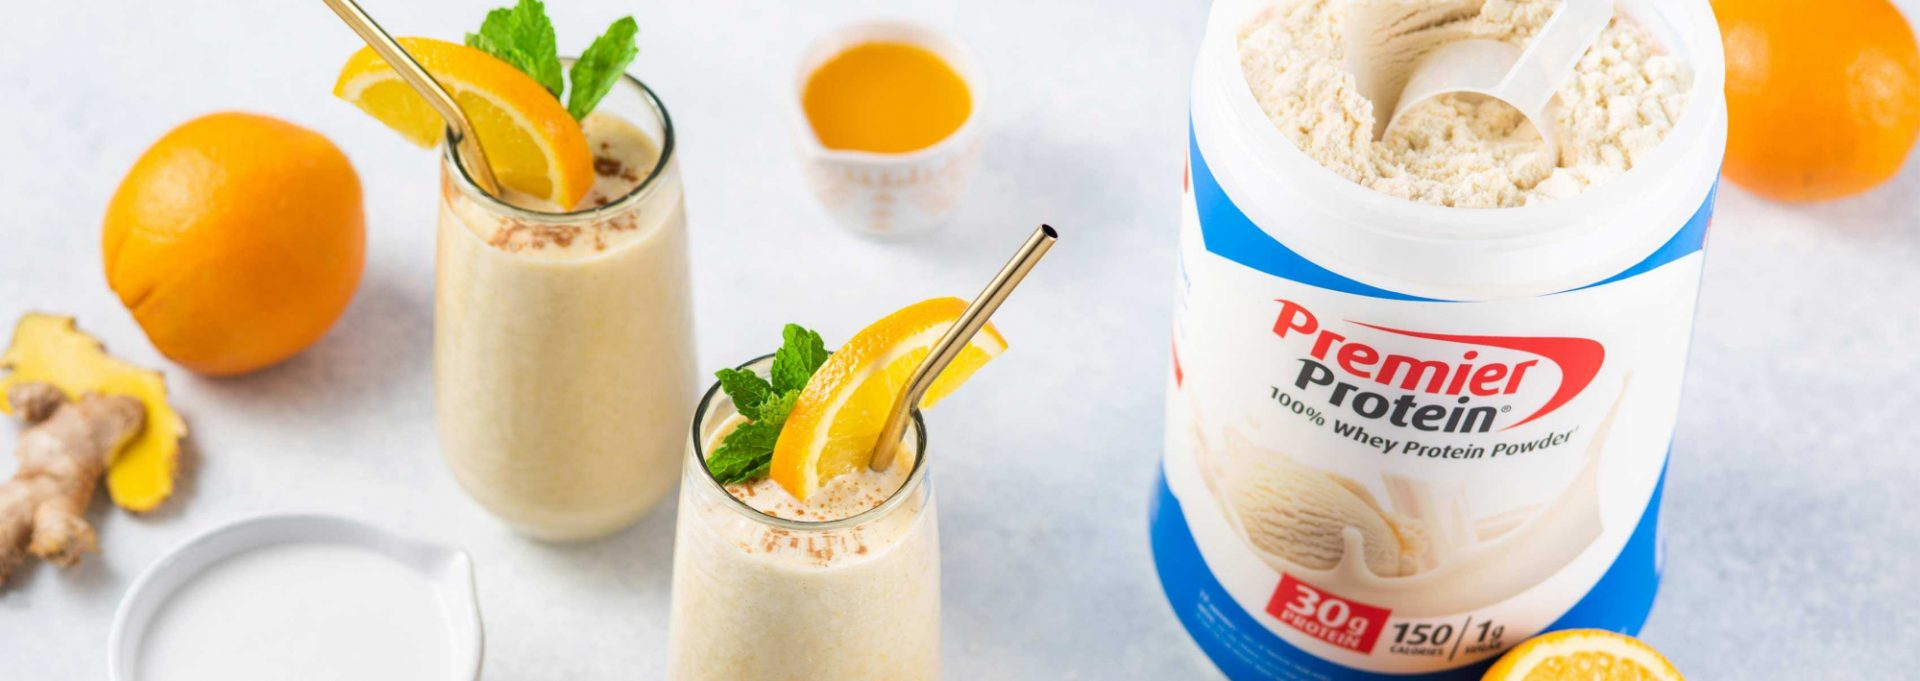 Two Premier Protein shakes in cups made with Premier Protein Vanilla Shake Powder.